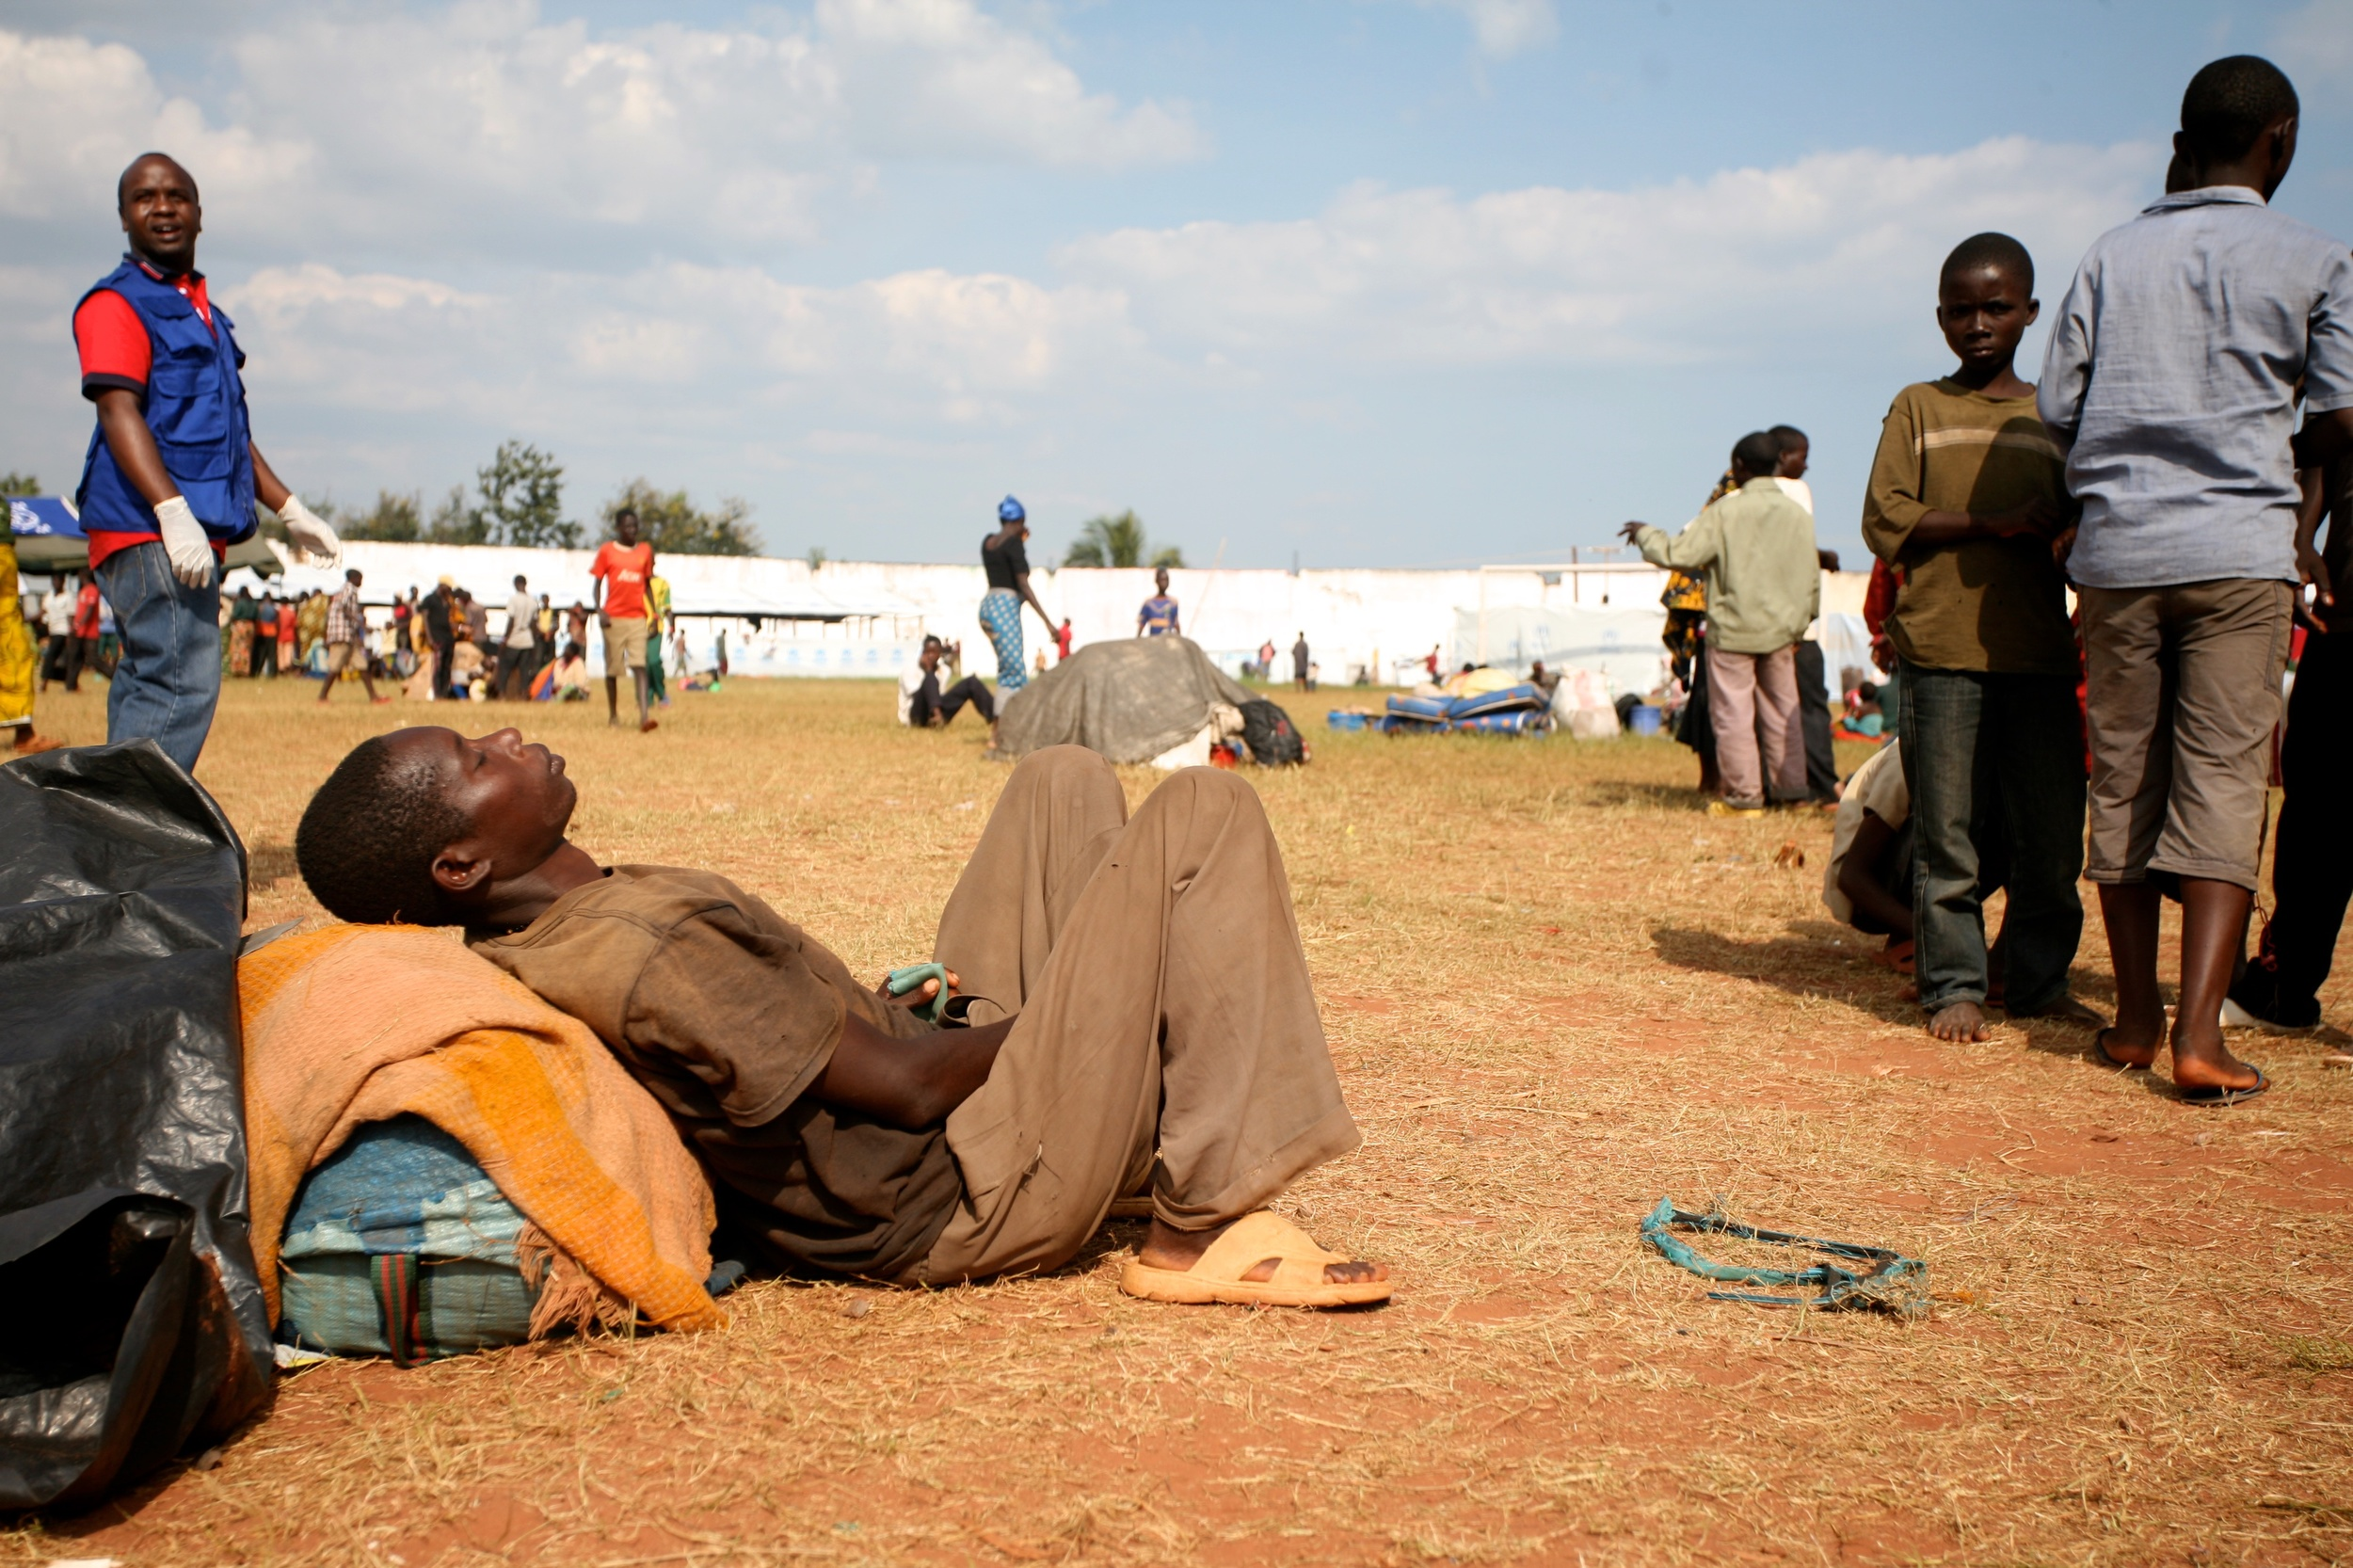 A Burundian refugee dozes in the sun at Lake Tanganyika Stadium in Kigoma, which has beenturned into a transit site for the refugees